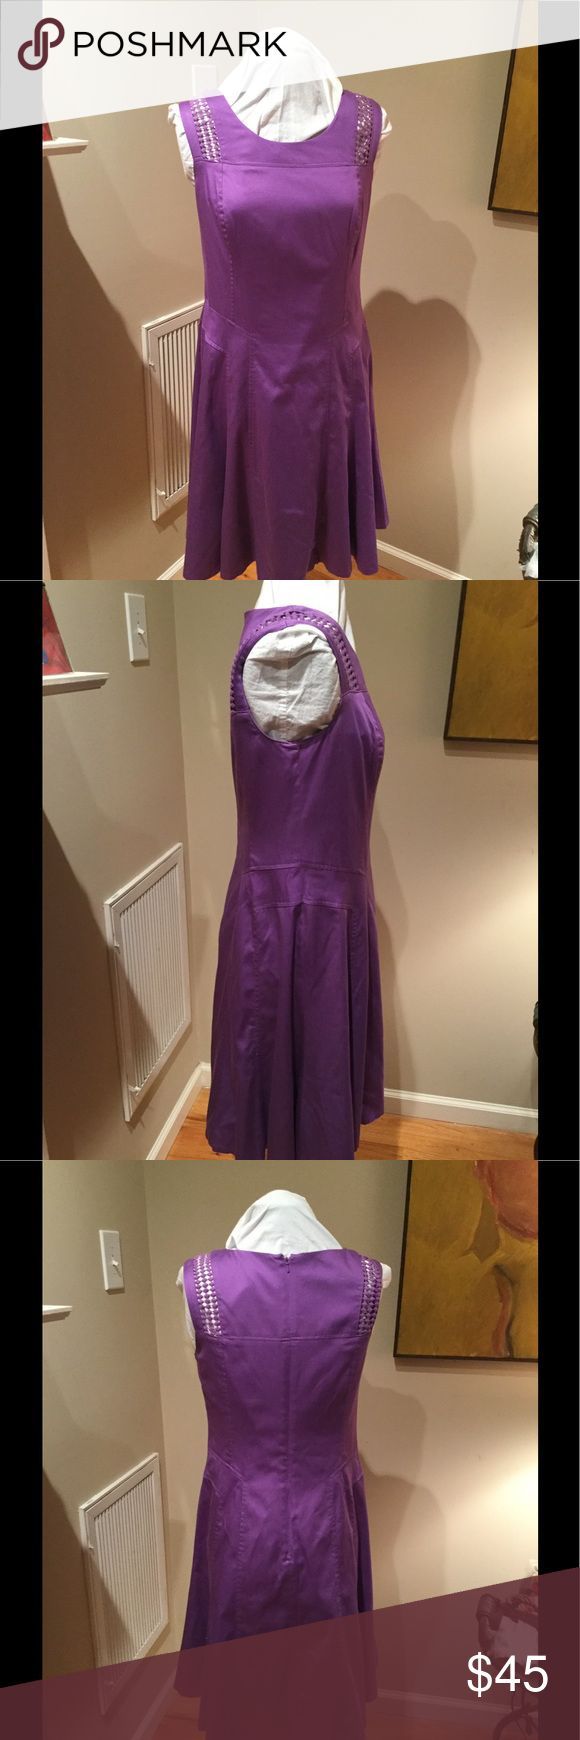 💖Gorgeous Purple Dress, lined 💖 Super adorable purple dress in a spring summer weight cotton blend and fully lined. Hidden back zipper. Drop waist and semi A line cut. Smoke free closet . Worn once and in excellent clean condition. Size 6 but forgiving cut. Bust is 17 1/4; length is 38 3/4; waist 16 1/2 . Beautiful seaming and looks fabulous on for work to worship of dress down days. Nine West Dresses Midi